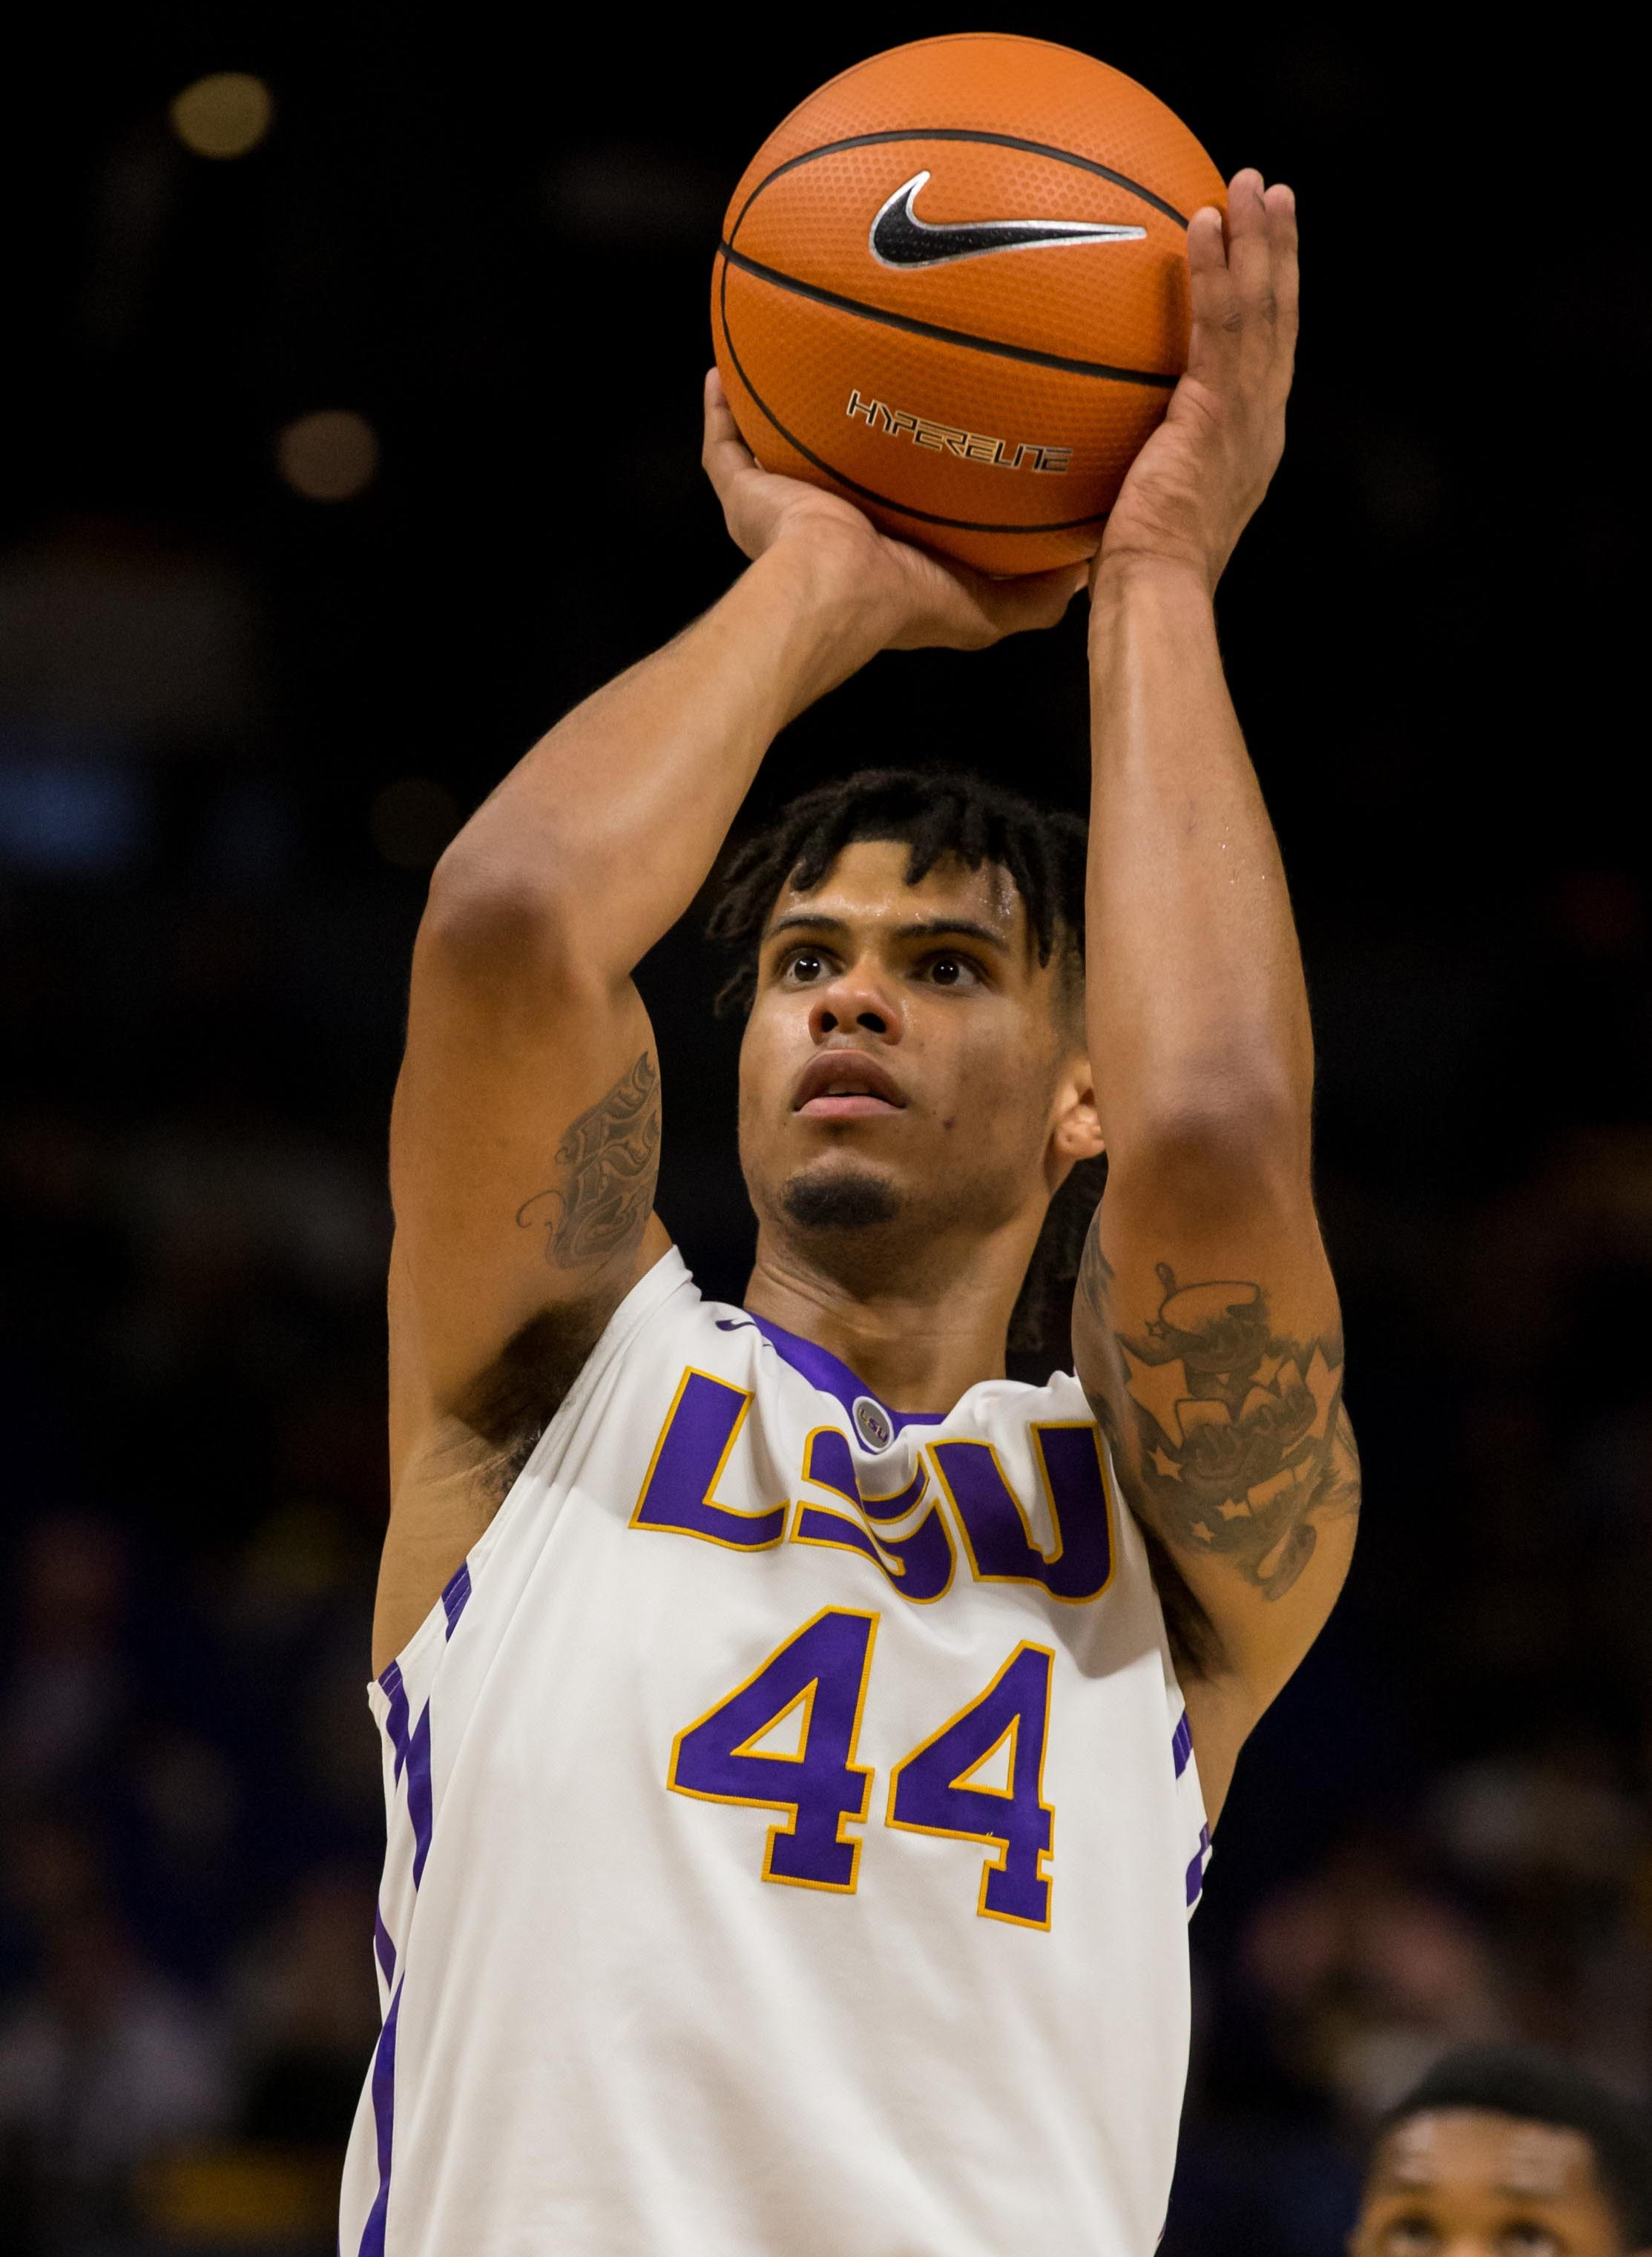 Wayde Sims Lsu Basketball Player Shot And Killed In Baton Rouge